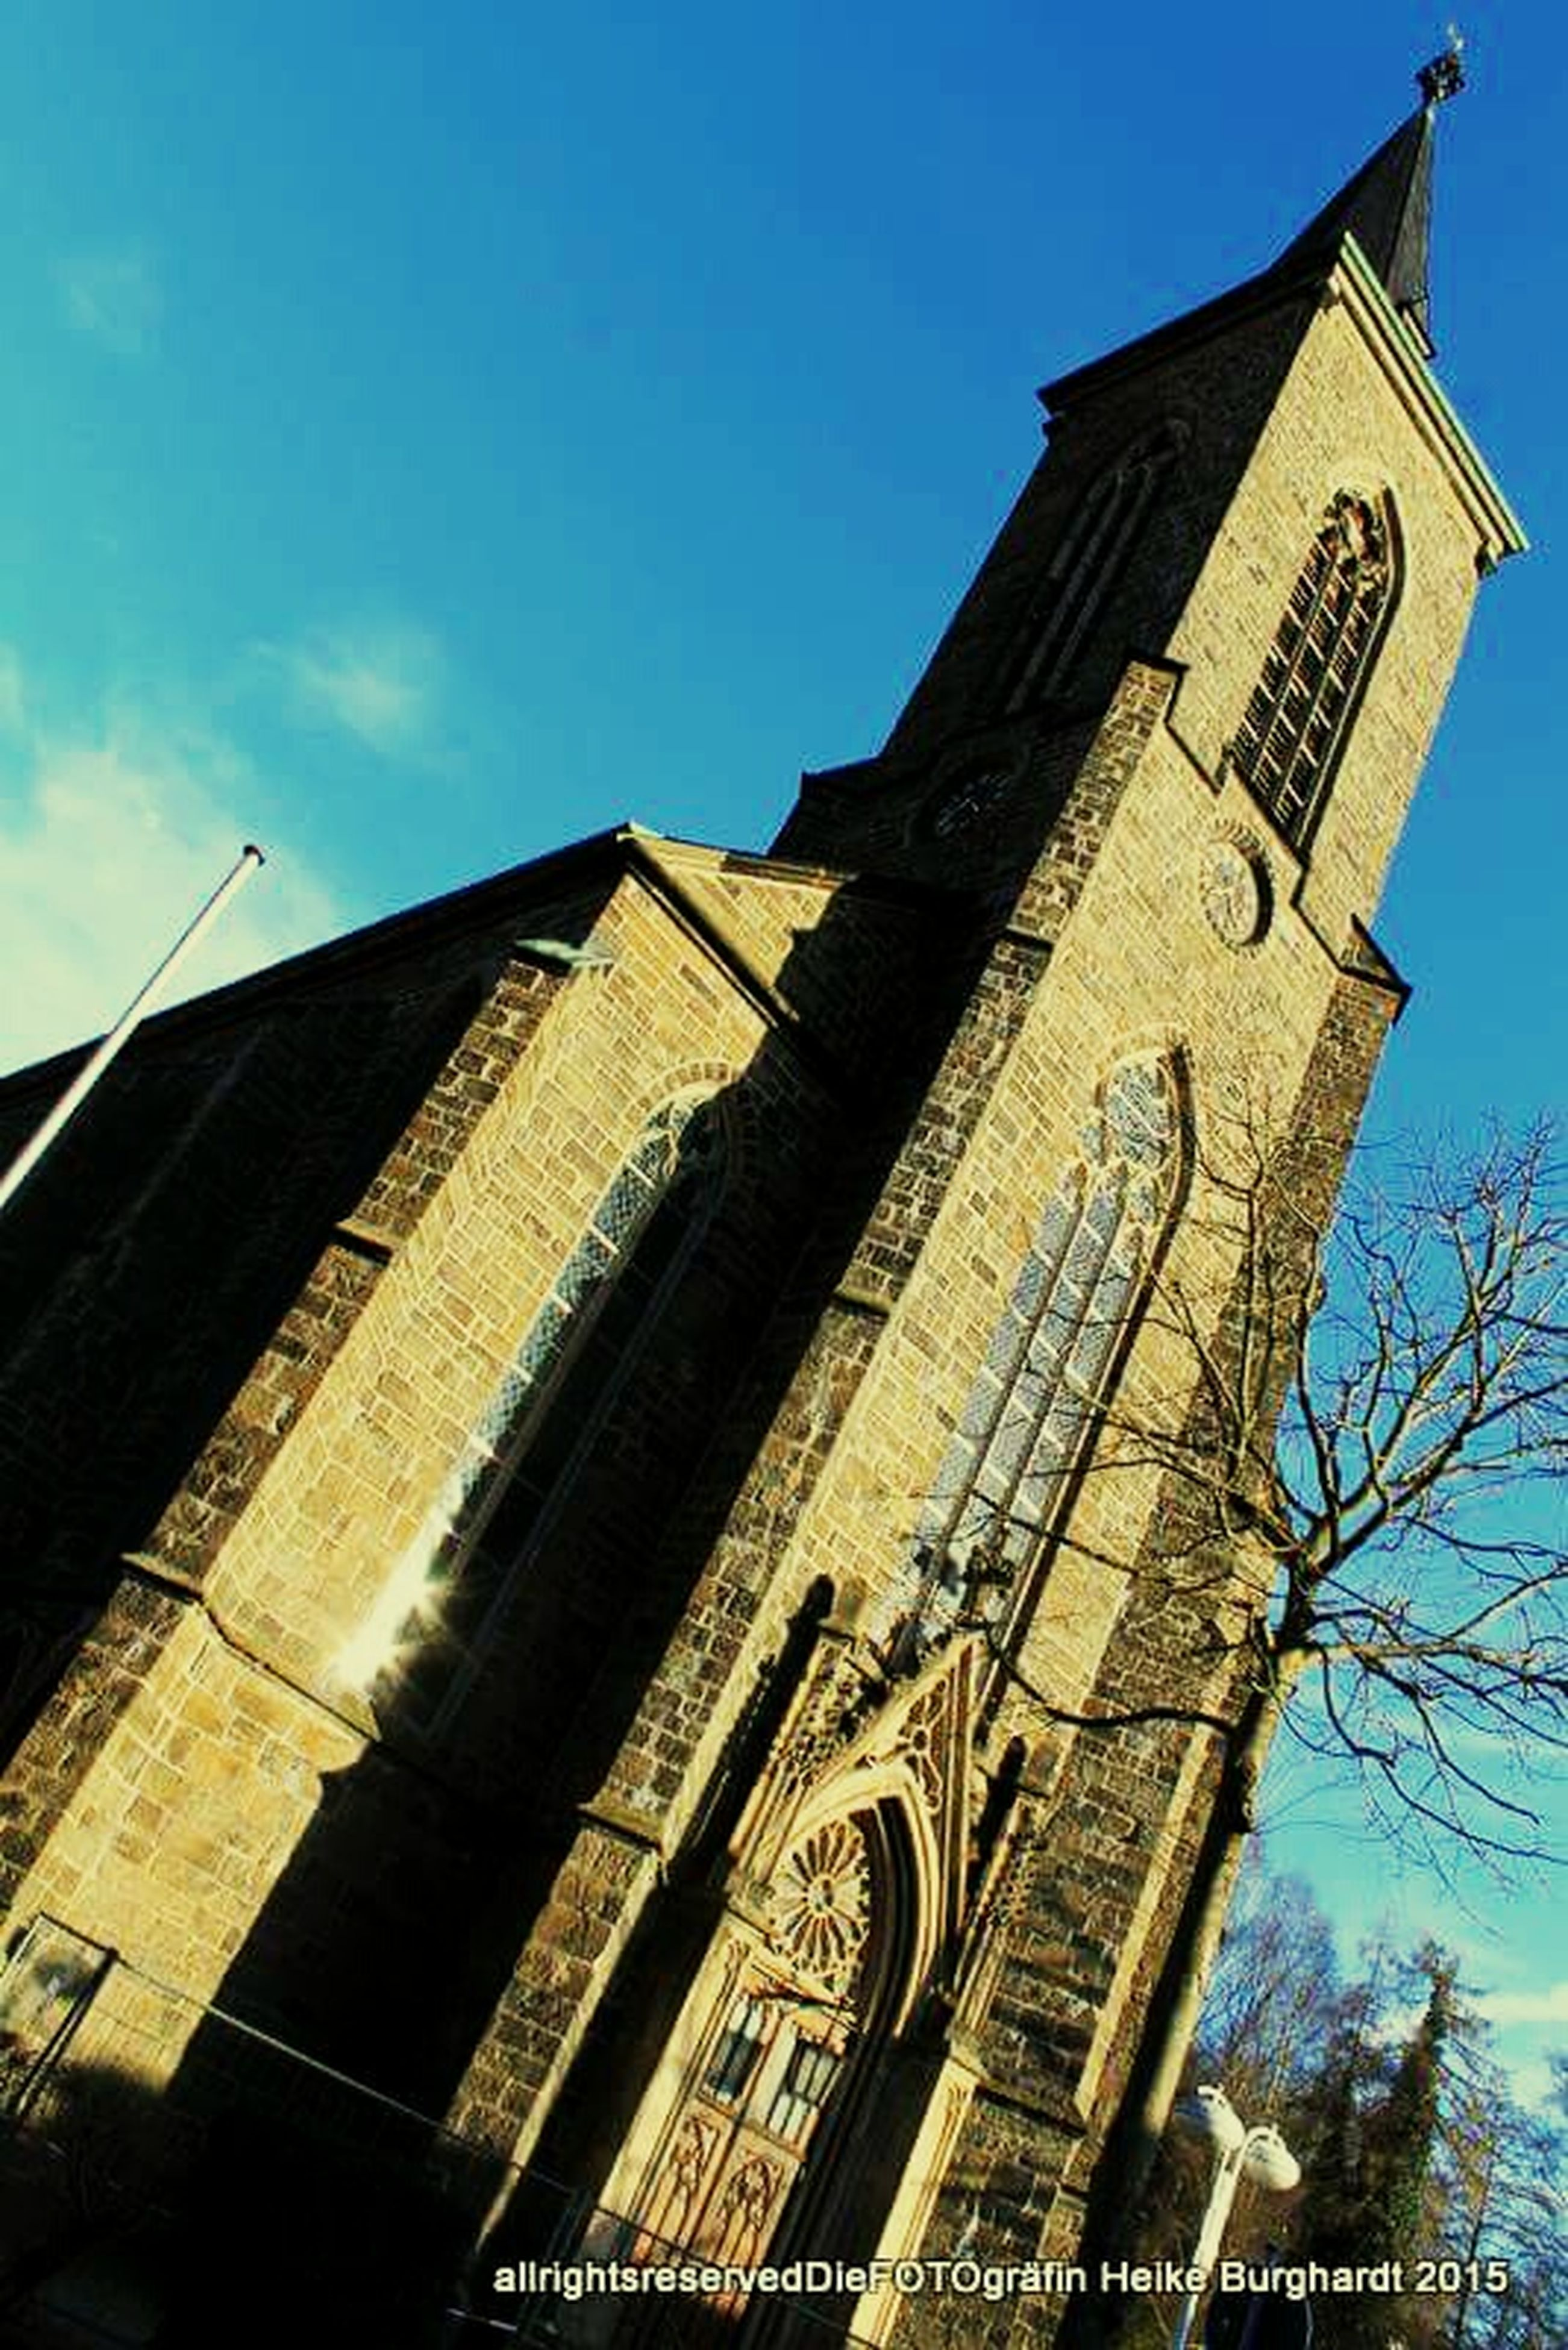 architecture, building exterior, built structure, low angle view, church, religion, place of worship, spirituality, tower, sky, history, clock tower, cathedral, blue, clear sky, old, cross, tall - high